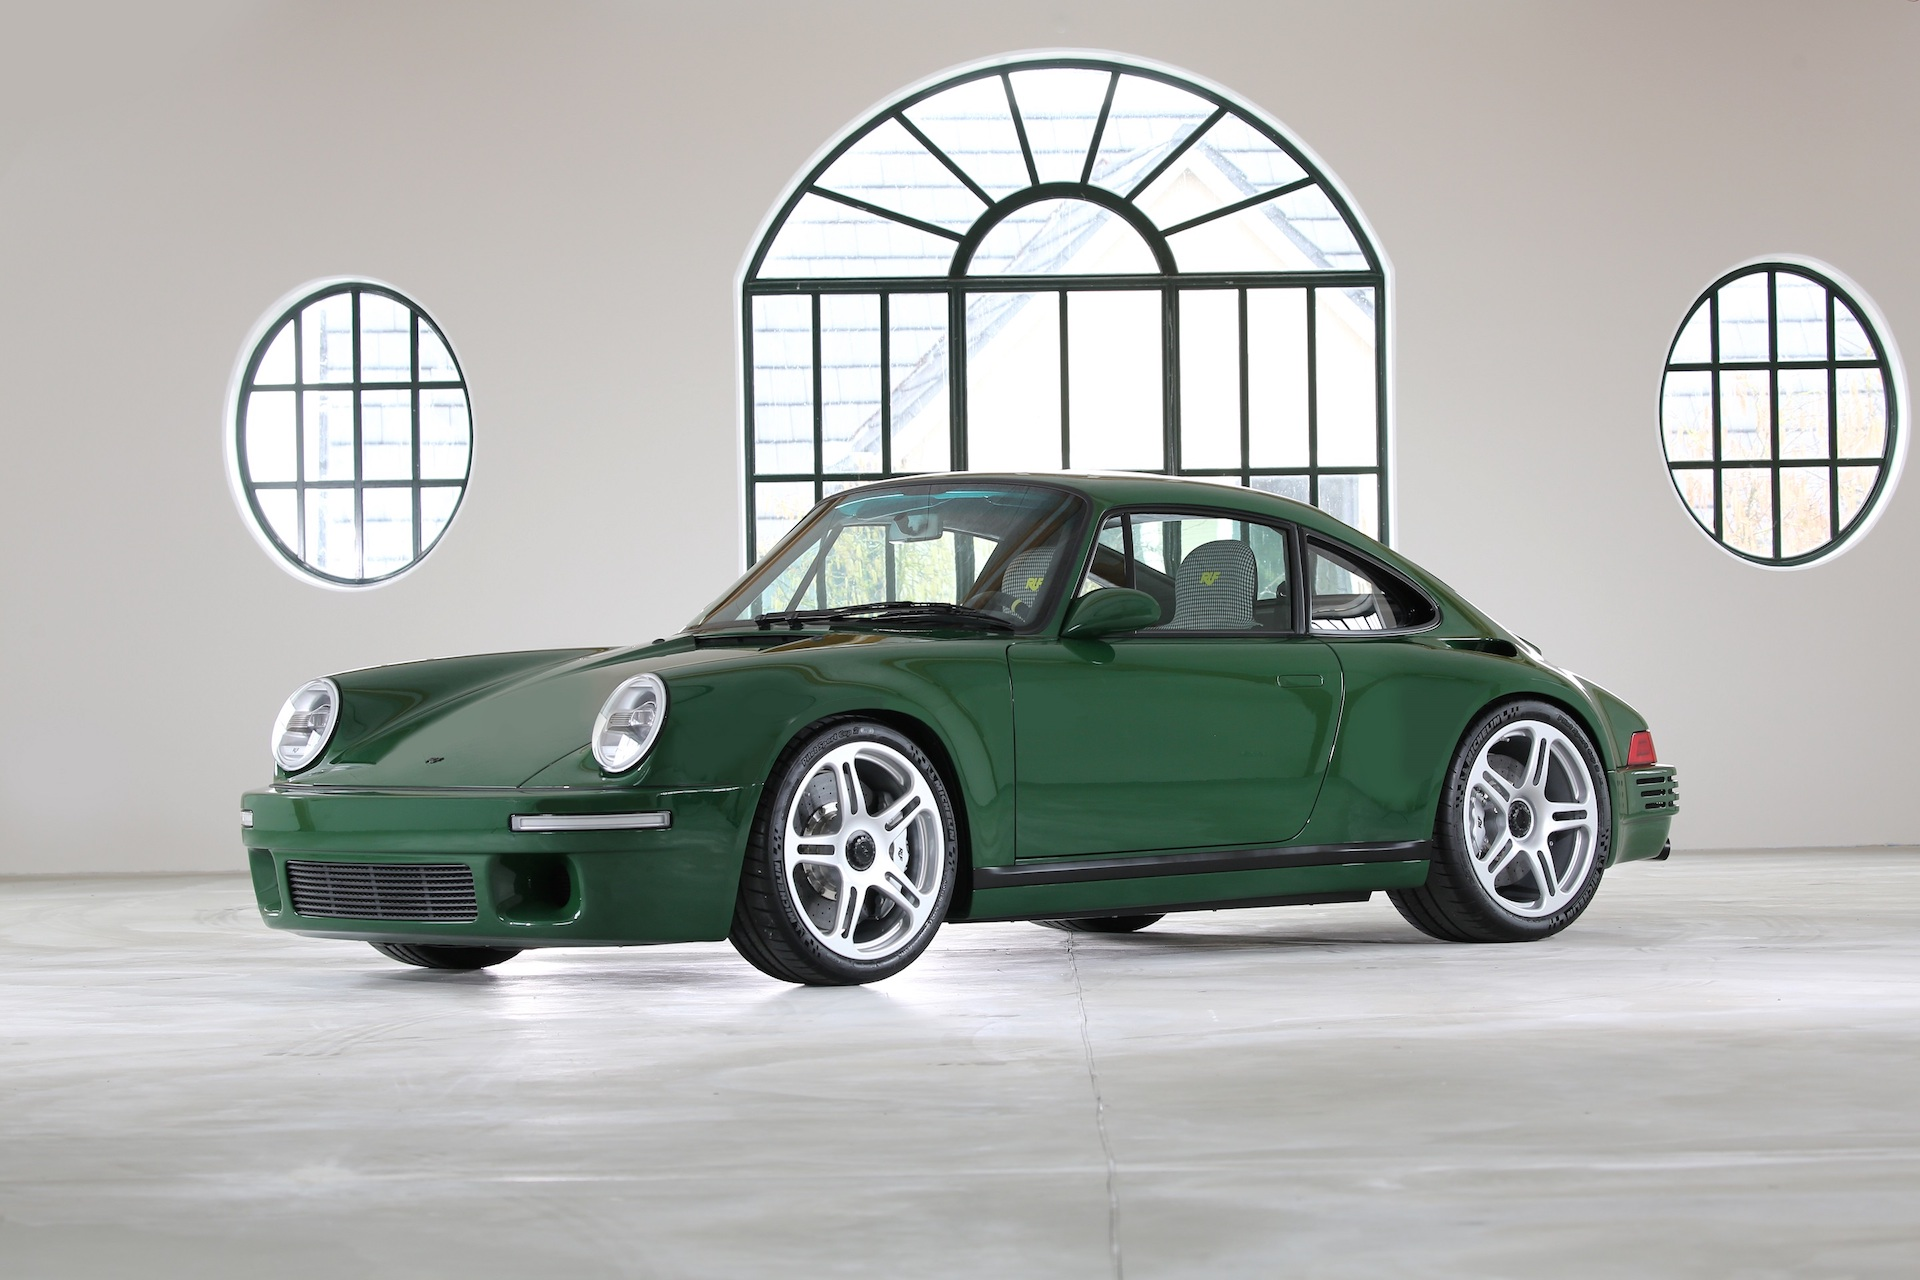 Ruf SCR bows in Geneva as homage to the original